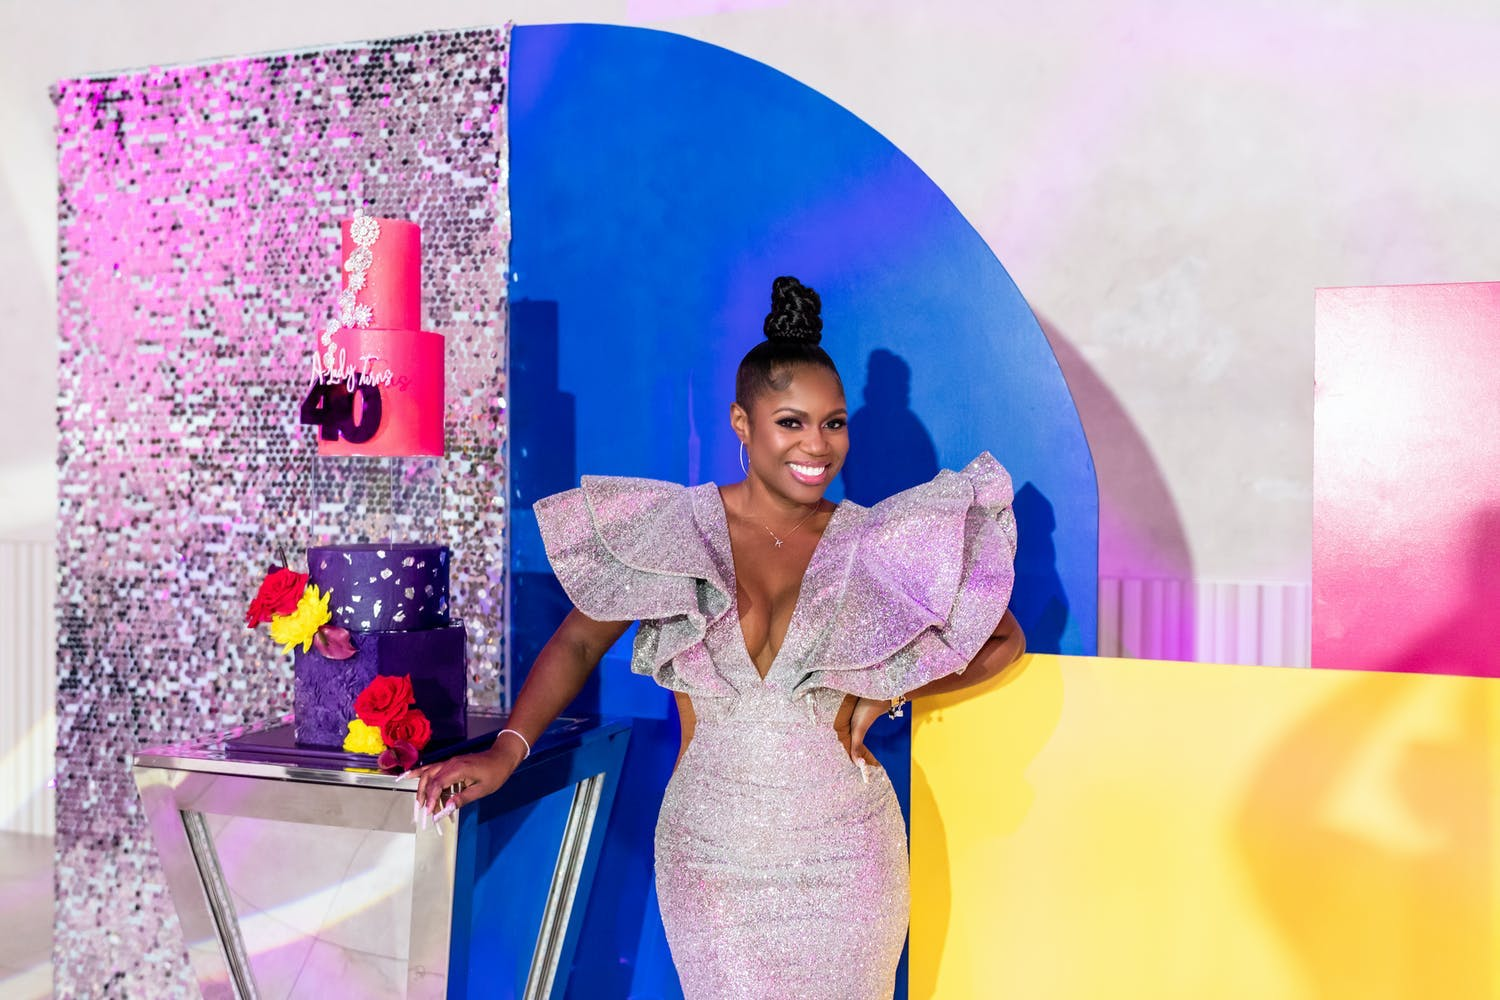 Woman Poses Against Colorful and Glittery Geometric Backdrop for Birthday Party | PartySlate